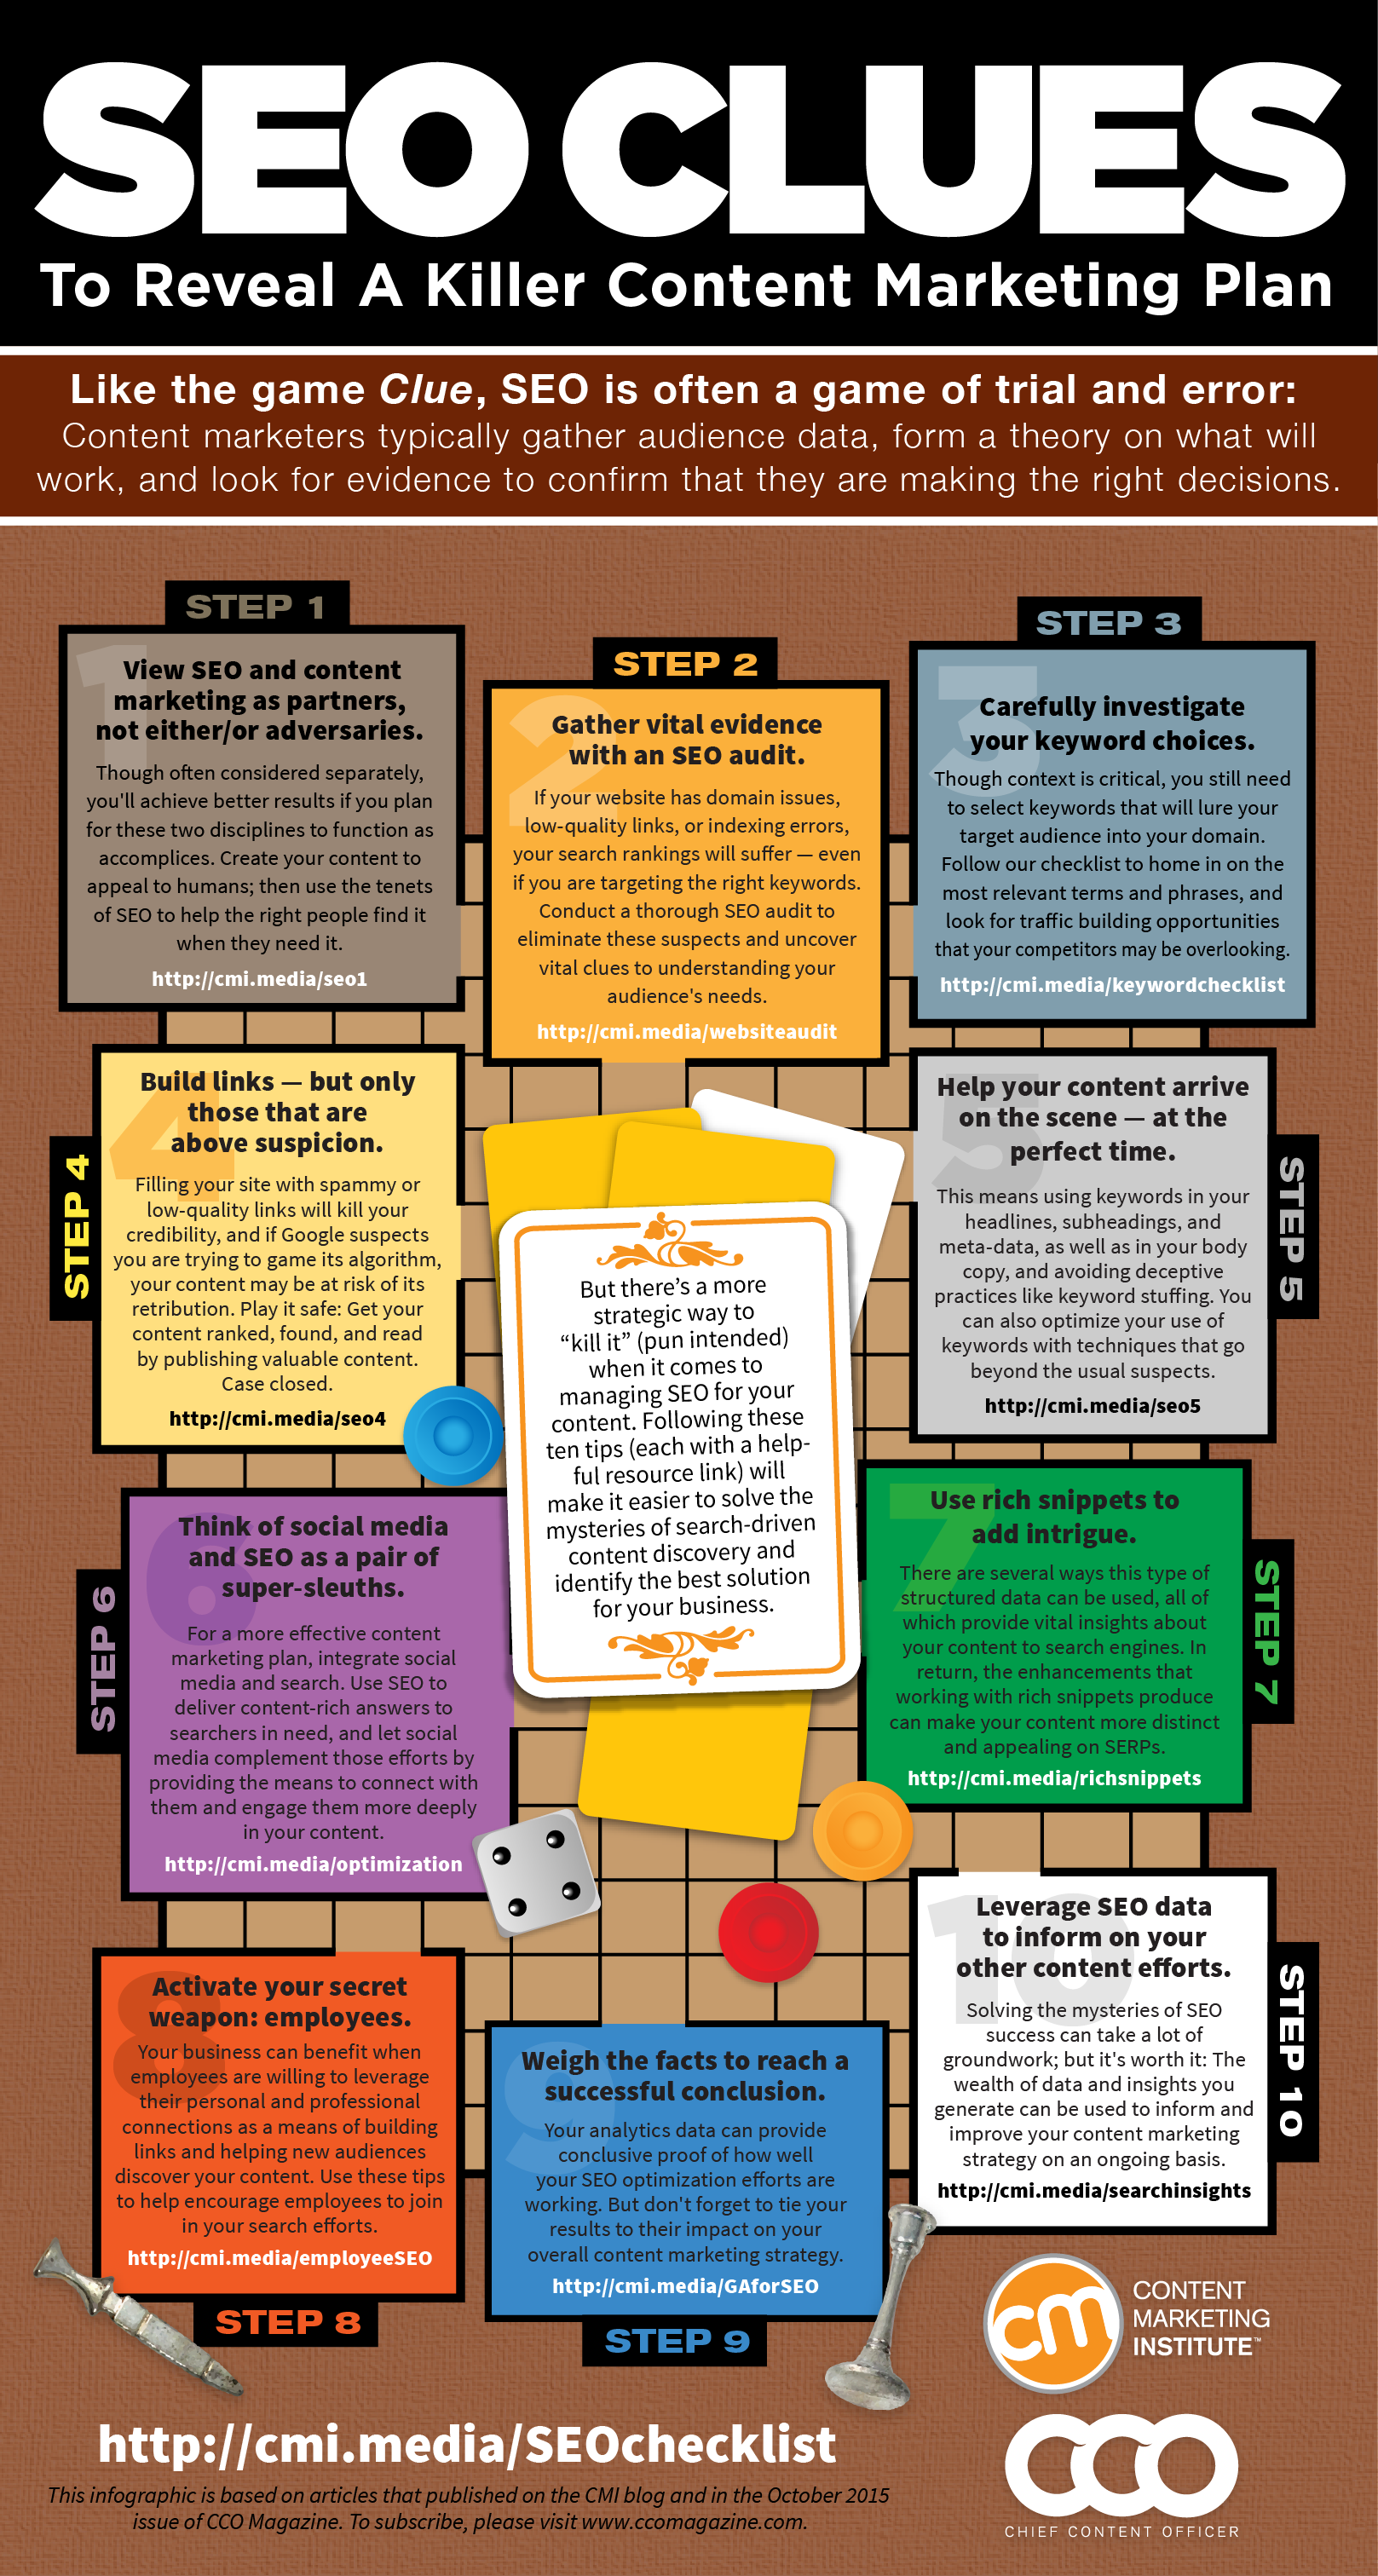 Infographic] SEO Clues To Reveal A Killer Content Marketing Plan